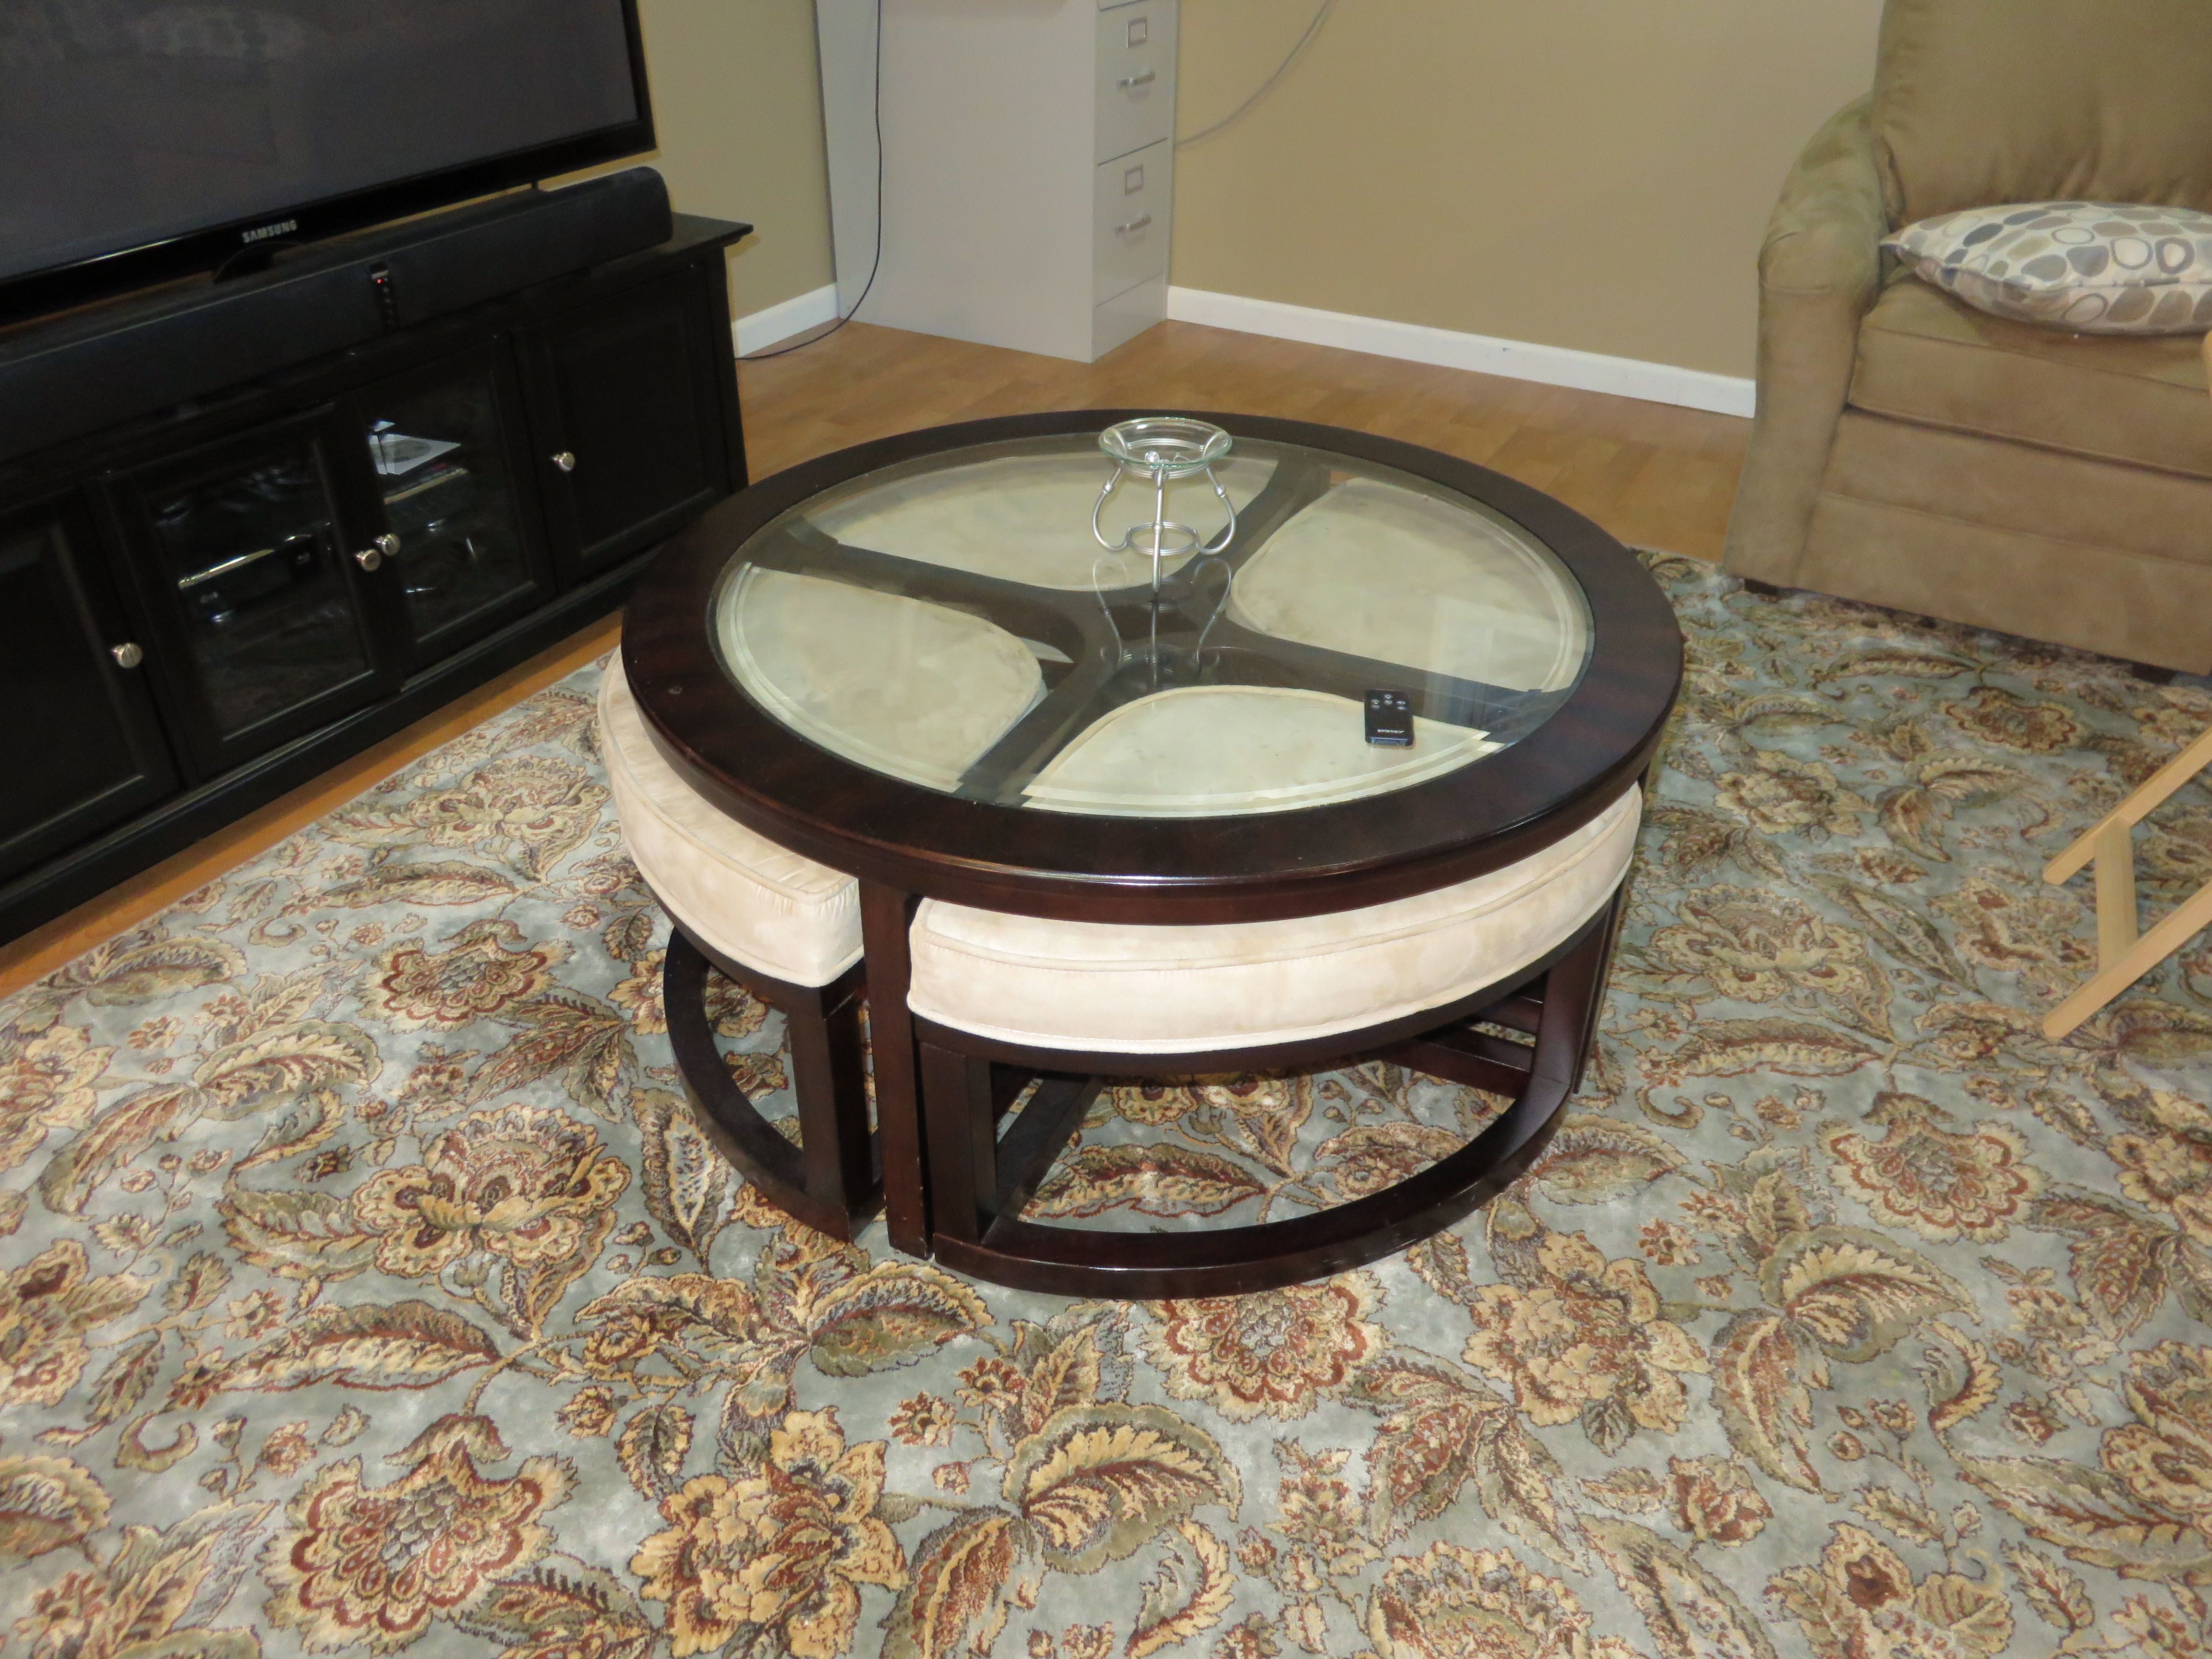 Round Glass Top Coffee Table W 4 Stools That Tuck Underneath Perfect For Kids To Sit And Play Or For Extra Seating In Small Place Stol Stul [ 3456 x 4608 Pixel ]